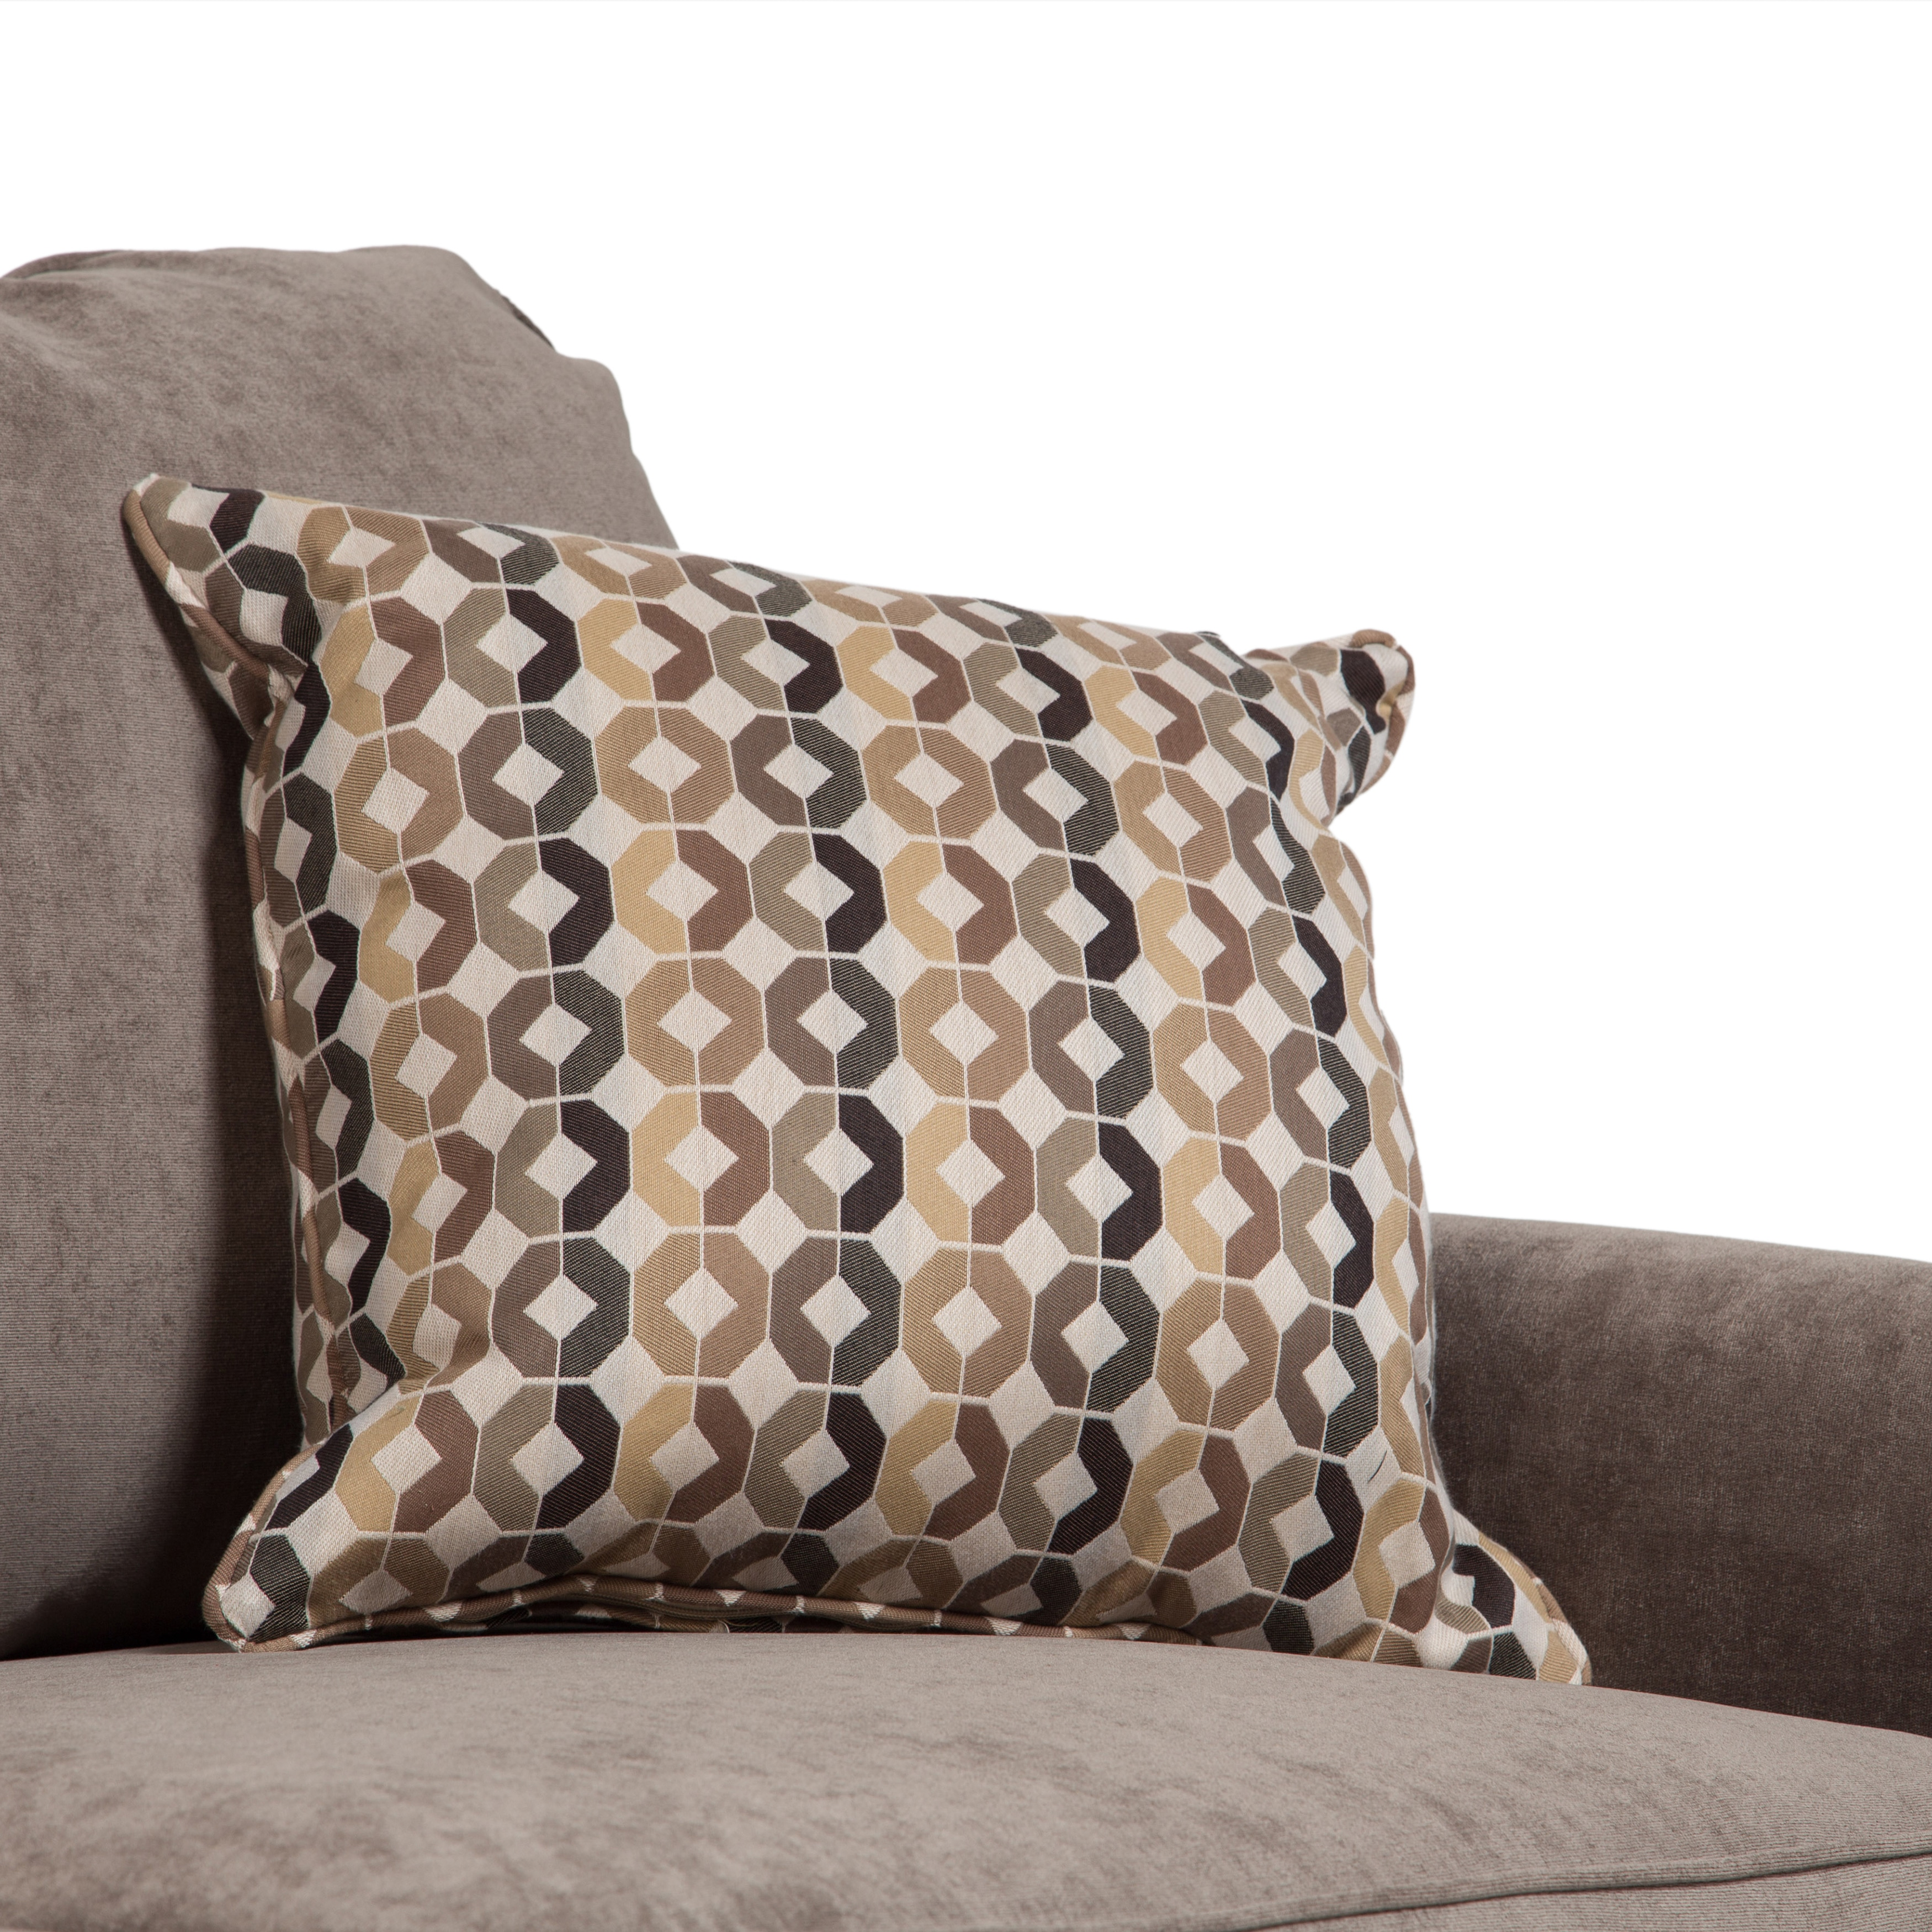 tans houndstooth pillow the home throw woven p tan pillows lane browns vesper